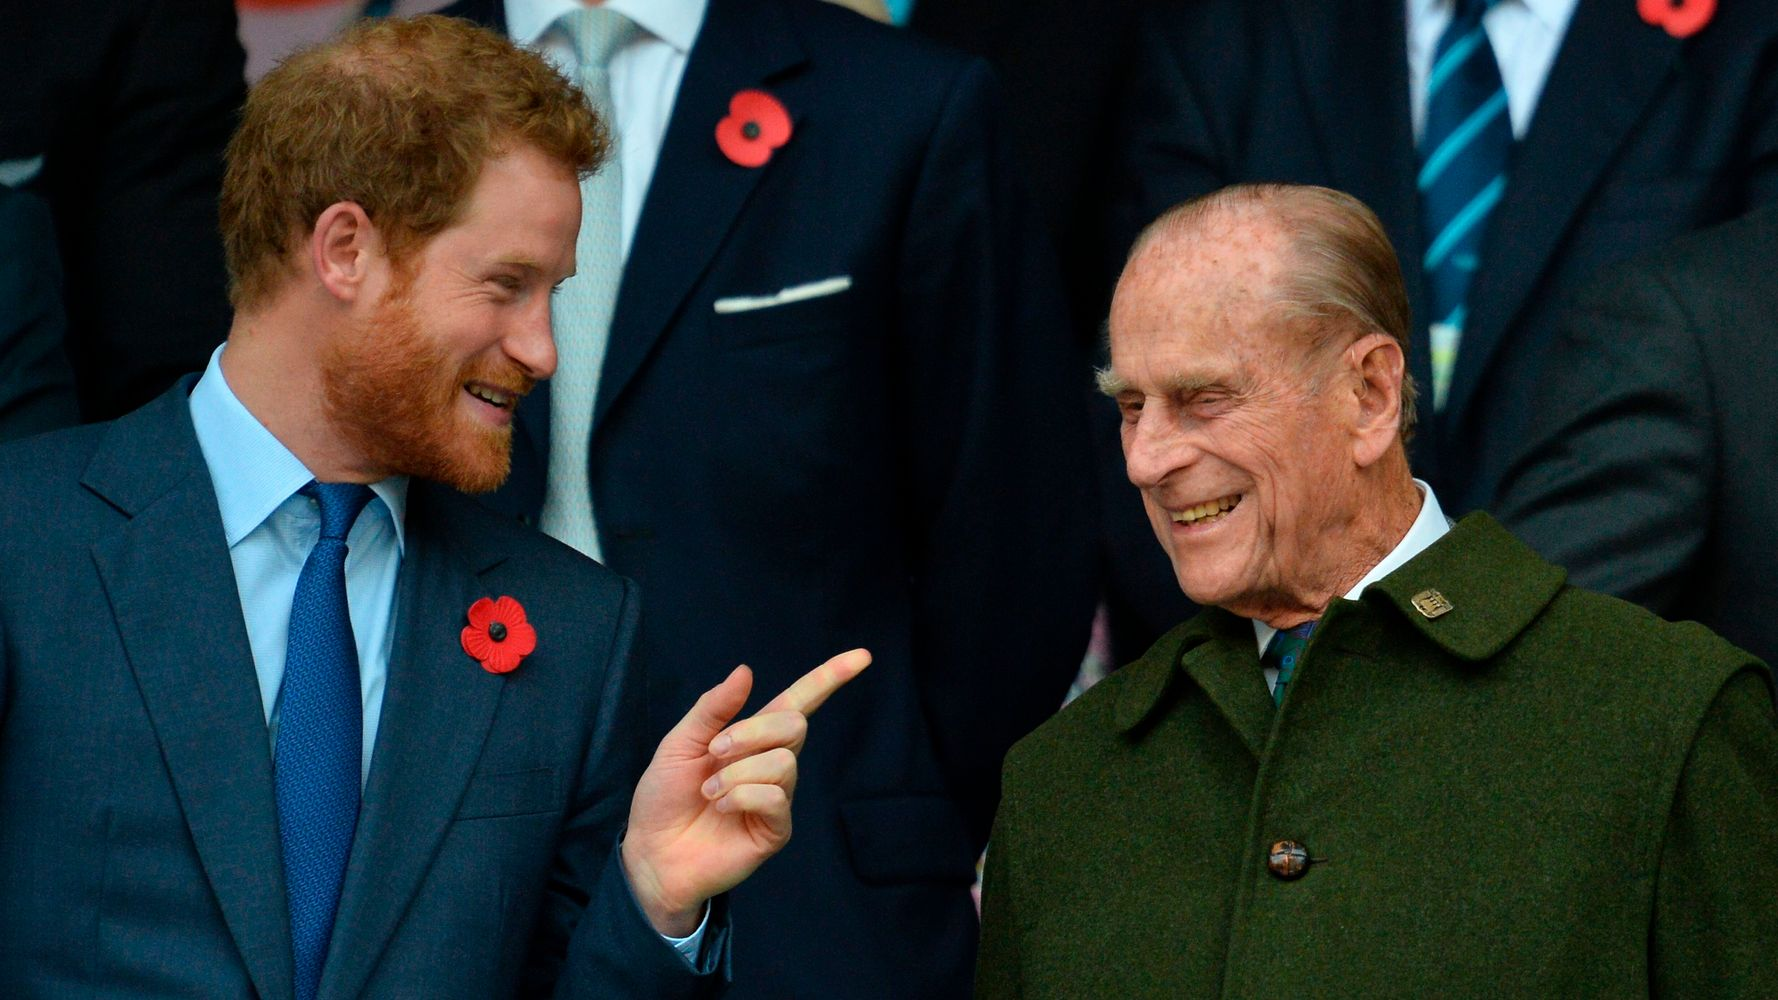 Prince Harry Mourns His 'Cheeky' Grandfather Prince Philip: 'He Was Authentically Himself'